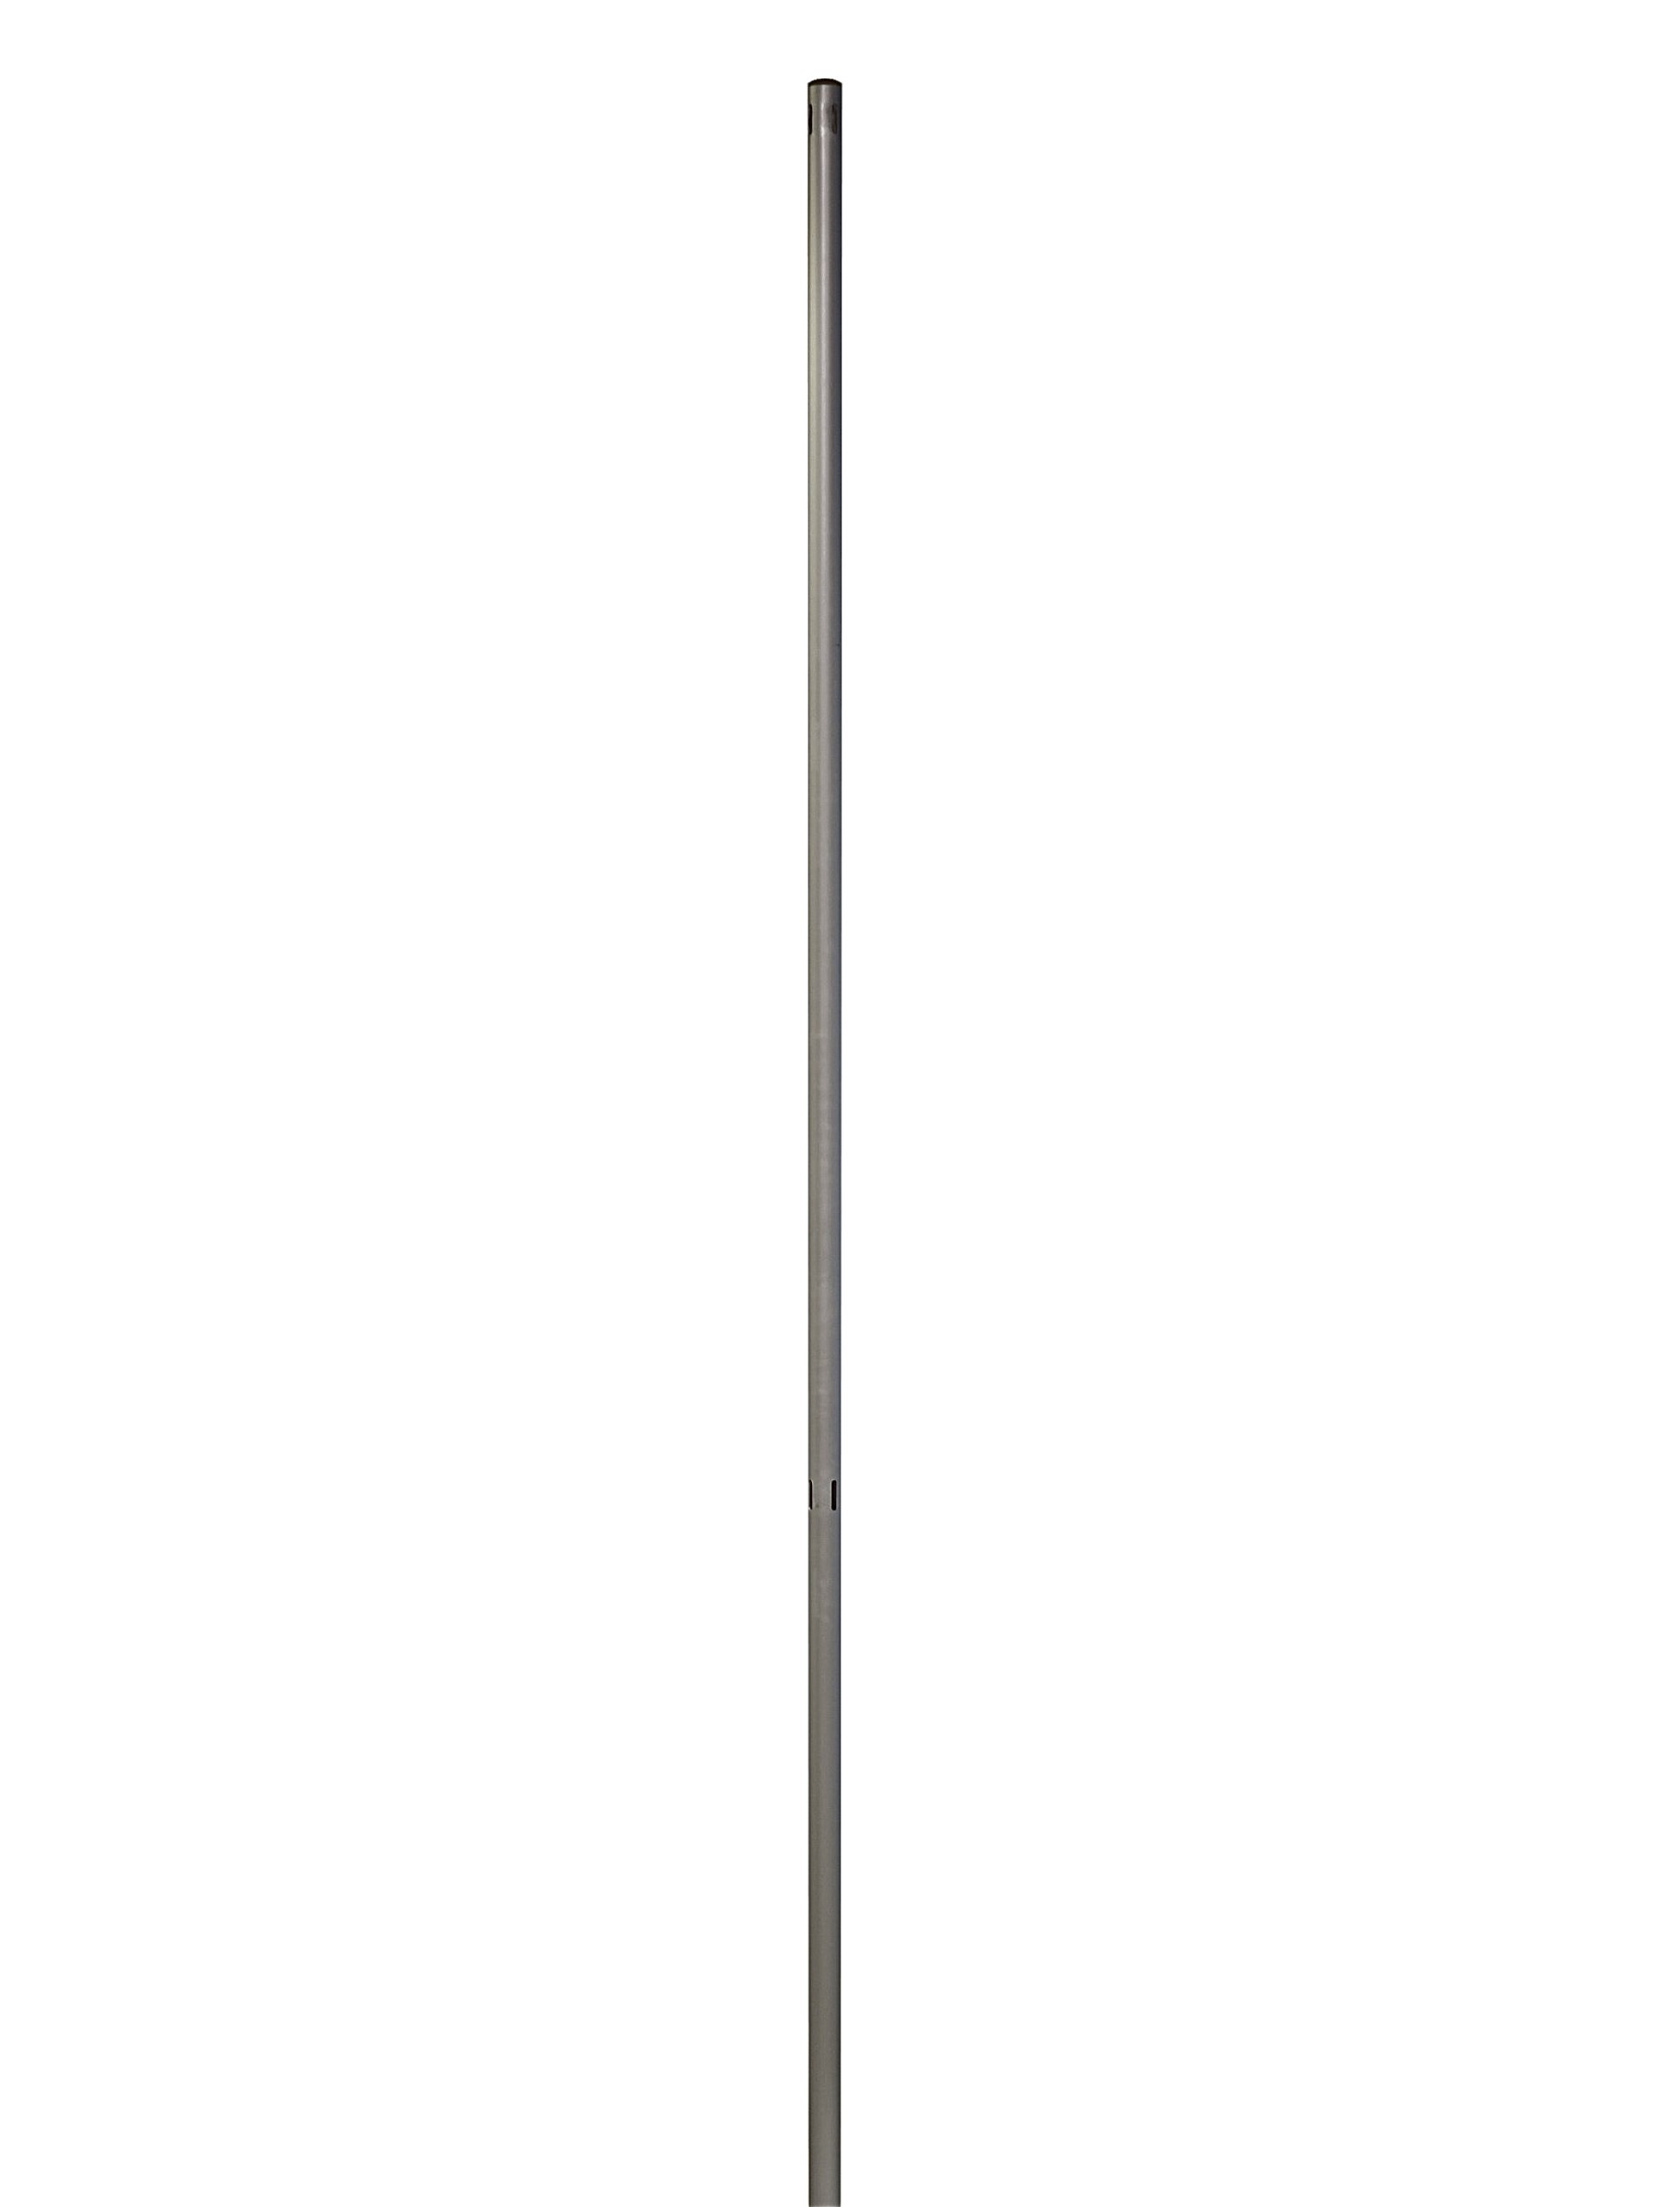 8 Ft. Tall Break-Apart Vertical Slip Fit Upright (For Pipe and Drape Displays and Backdrops)